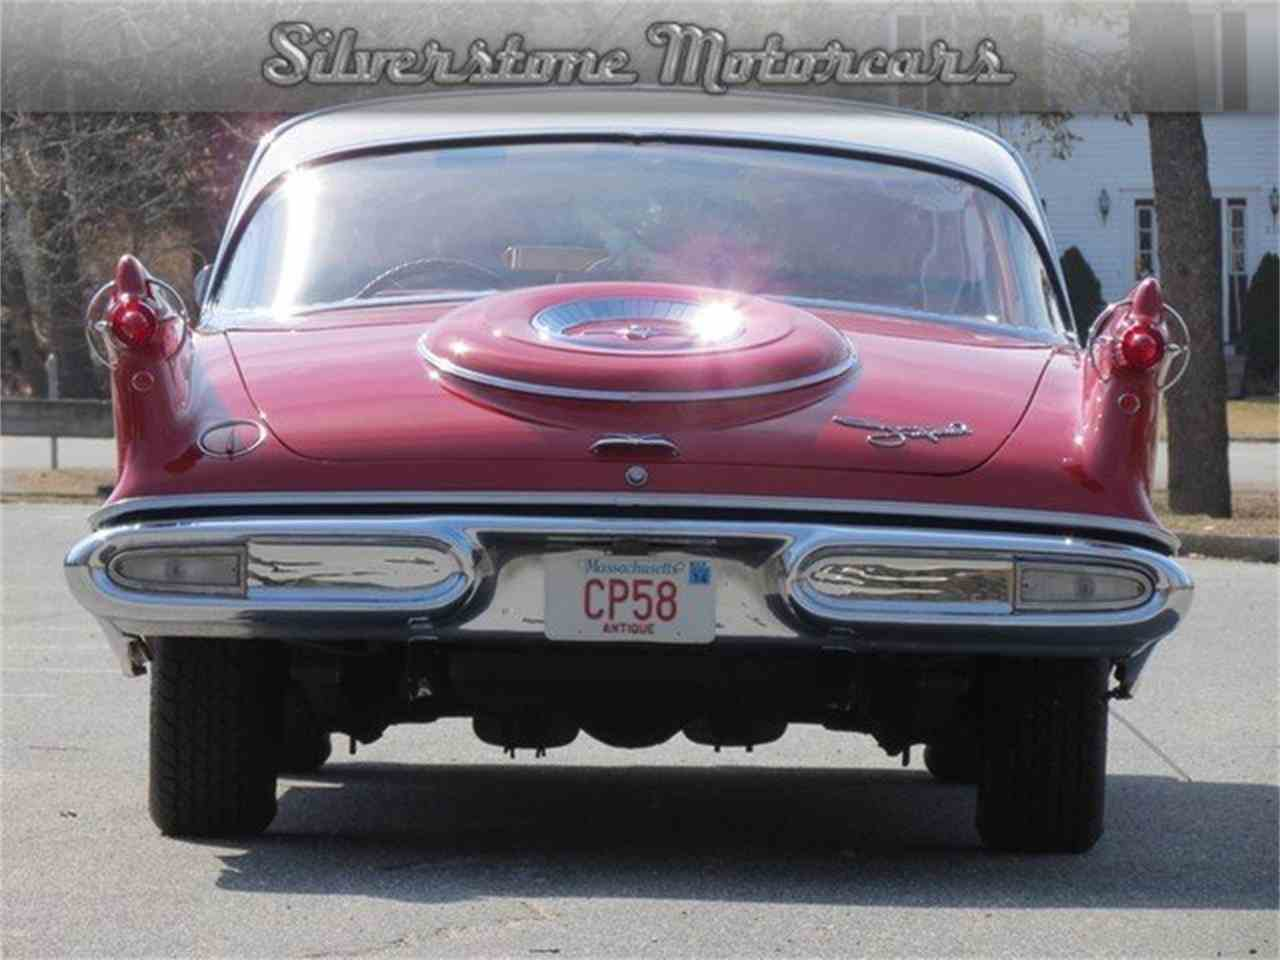 Large Picture of Classic 1958 Chrysler Southampton located in Massachusetts Offered by Silverstone Motorcars - F8I7